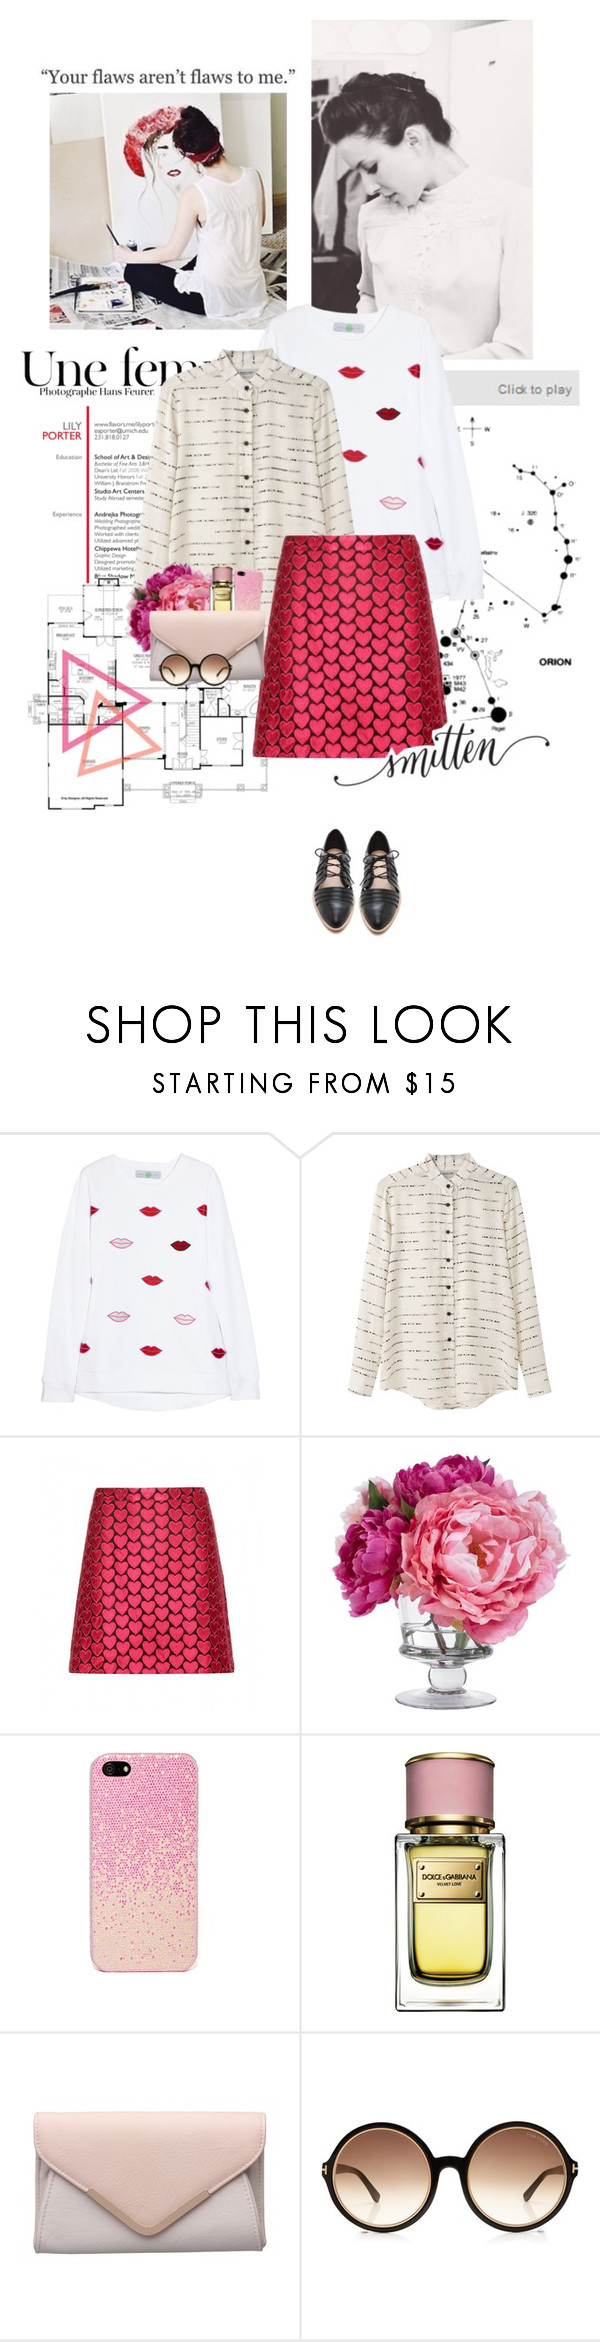 """Your flaws aren't flaws to me."" by sarahstardom ❤ liked on Polyvore featuring STELLA McCARTNEY, Rachel Comey, Alice + Olivia, Diane James, Dolce&Gabbana, Tom Ford and Loeffler Randall"